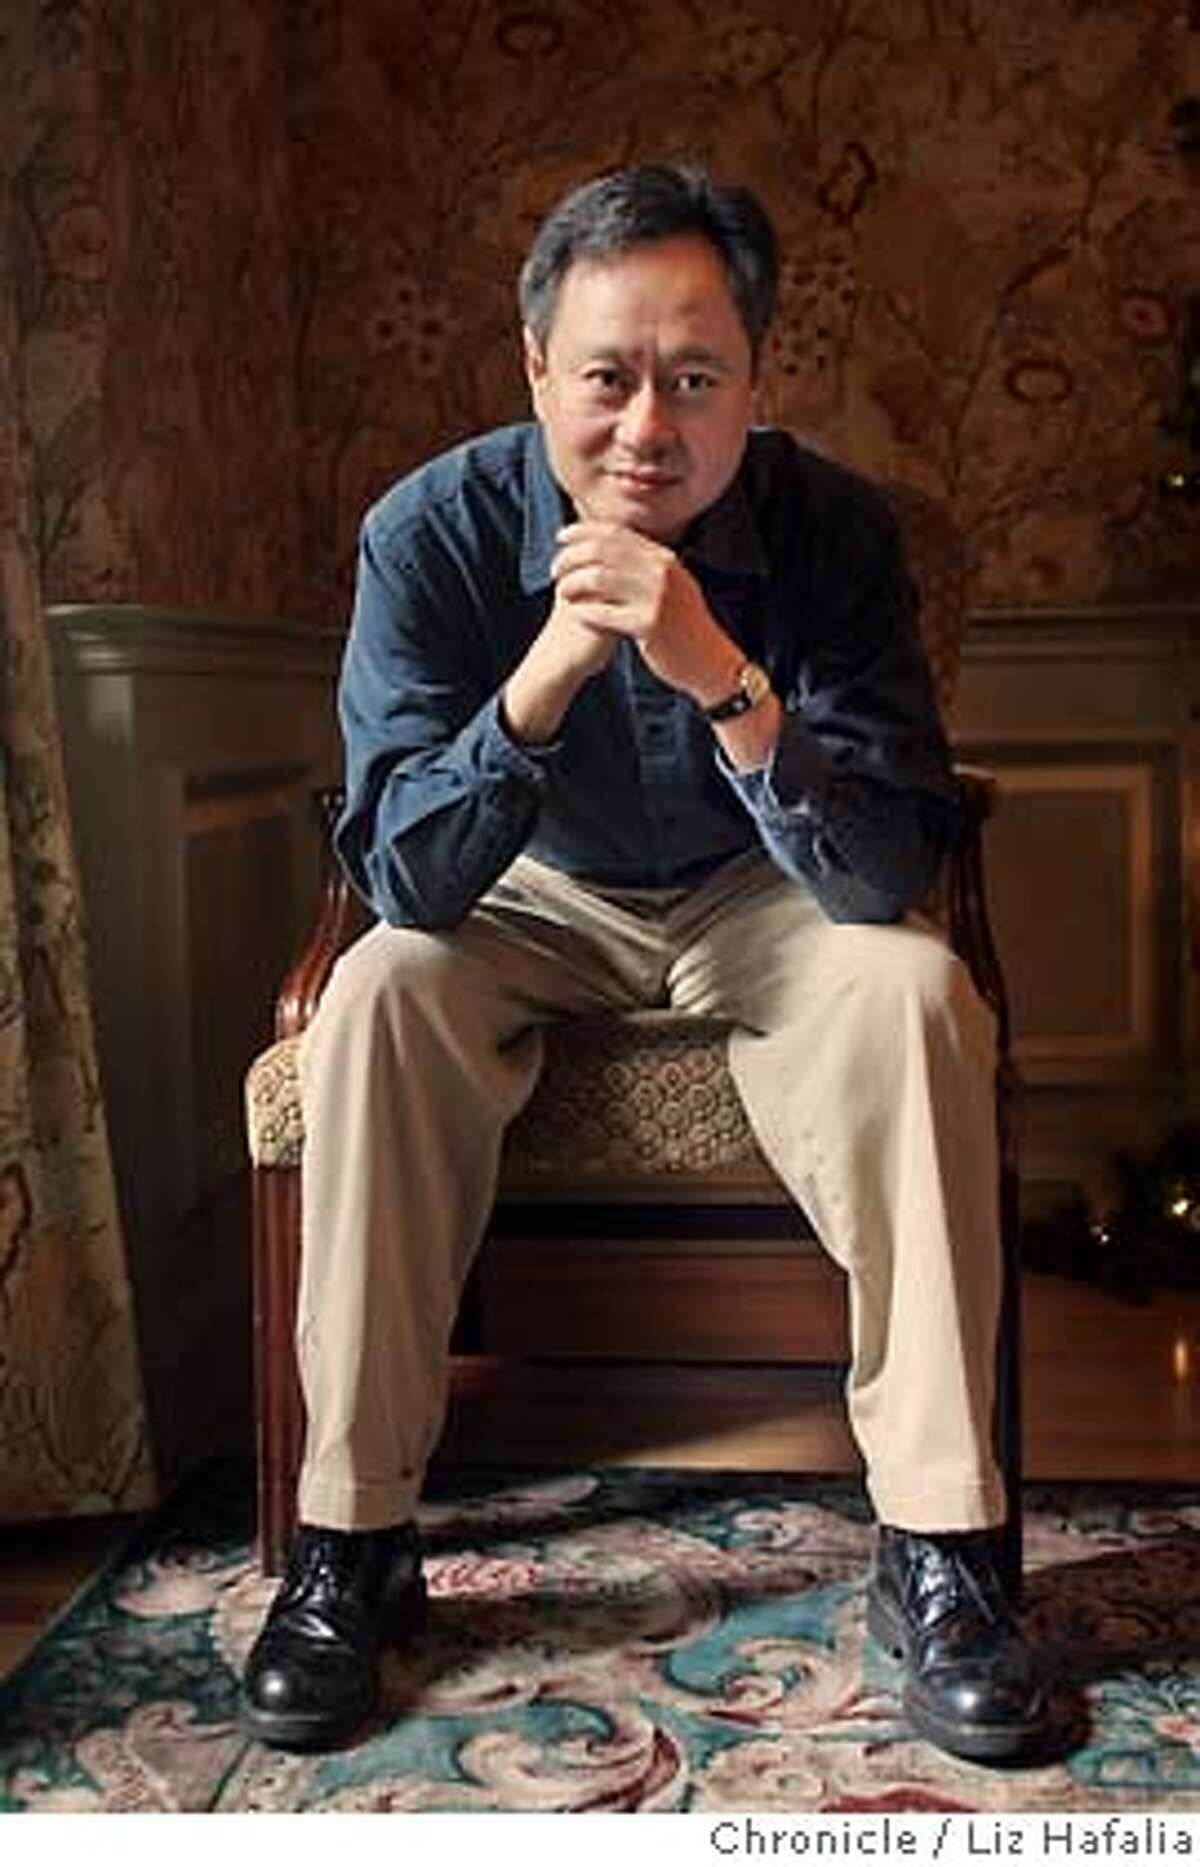 """LEDGER30_003_LH.JPG Director Ang Lee, who is in town for a screening of """"Brokeback Mountain"""". Photographed by Liz Hafalia on 11/28/05 in San Francisco, California. SFC Creditted to the San Francisco Chronicle/Liz Hafalia"""